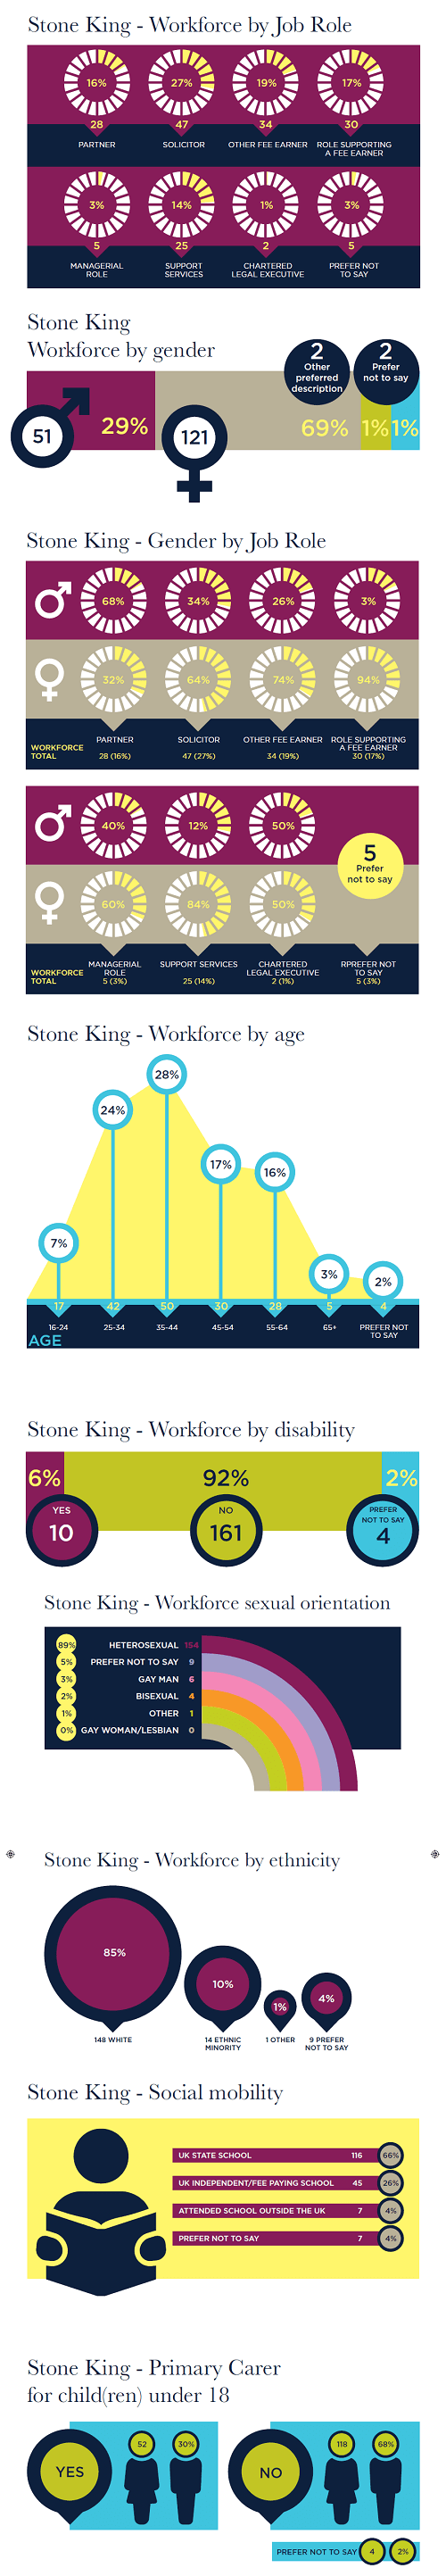 Series of infographics displaying Stone King's diversity